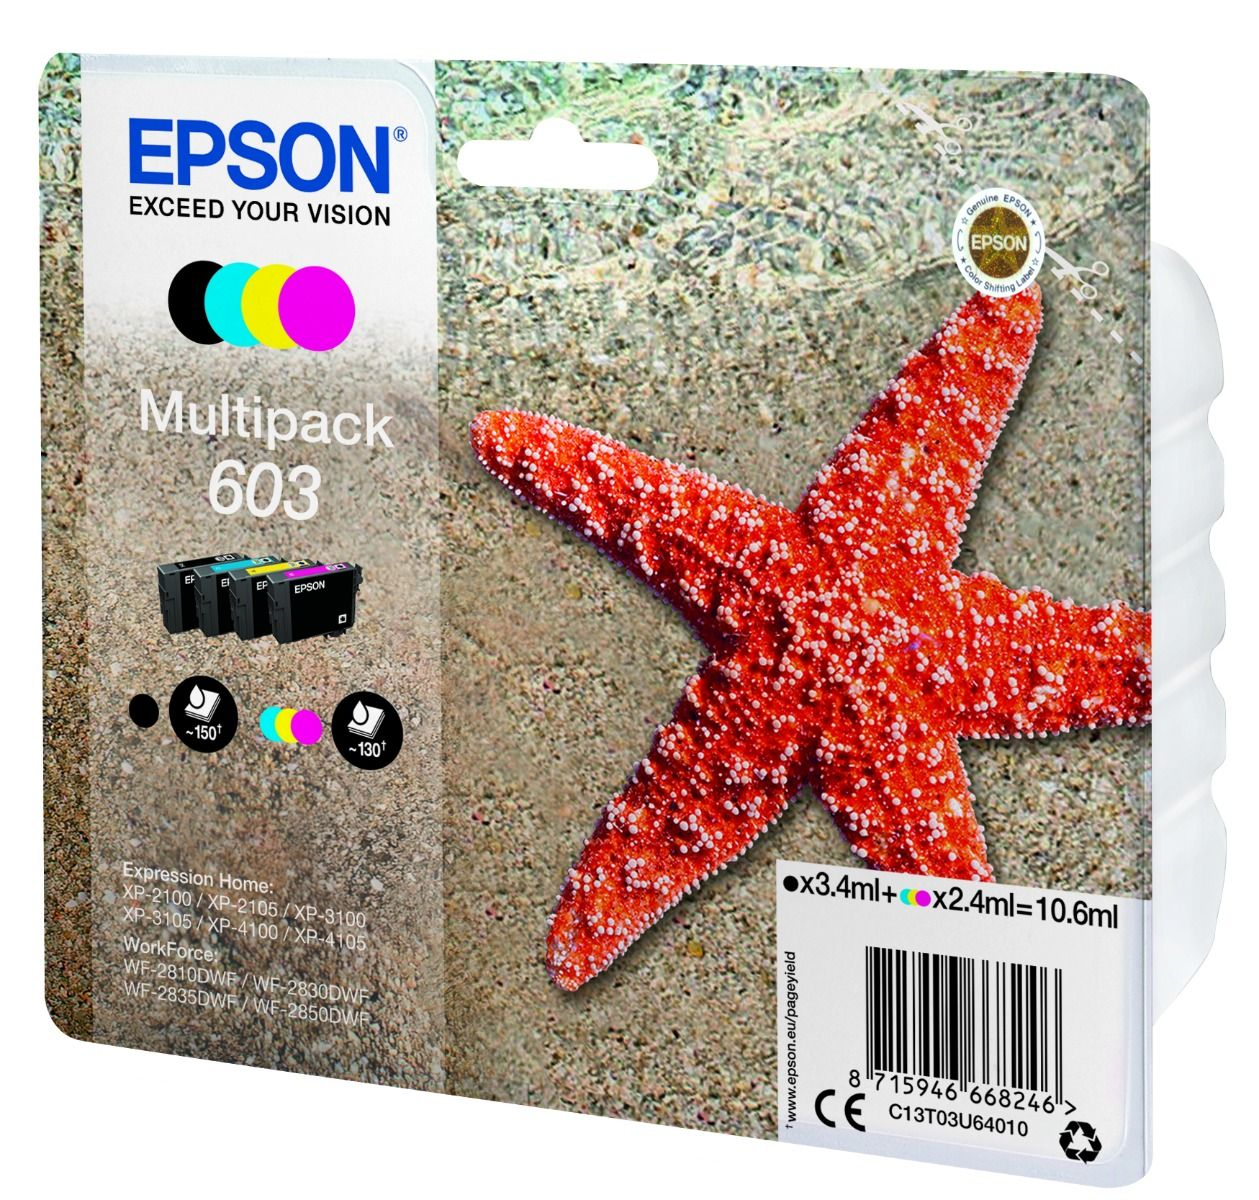 4 Color Epson 603 Ink Cartridge Multipack - T03U640